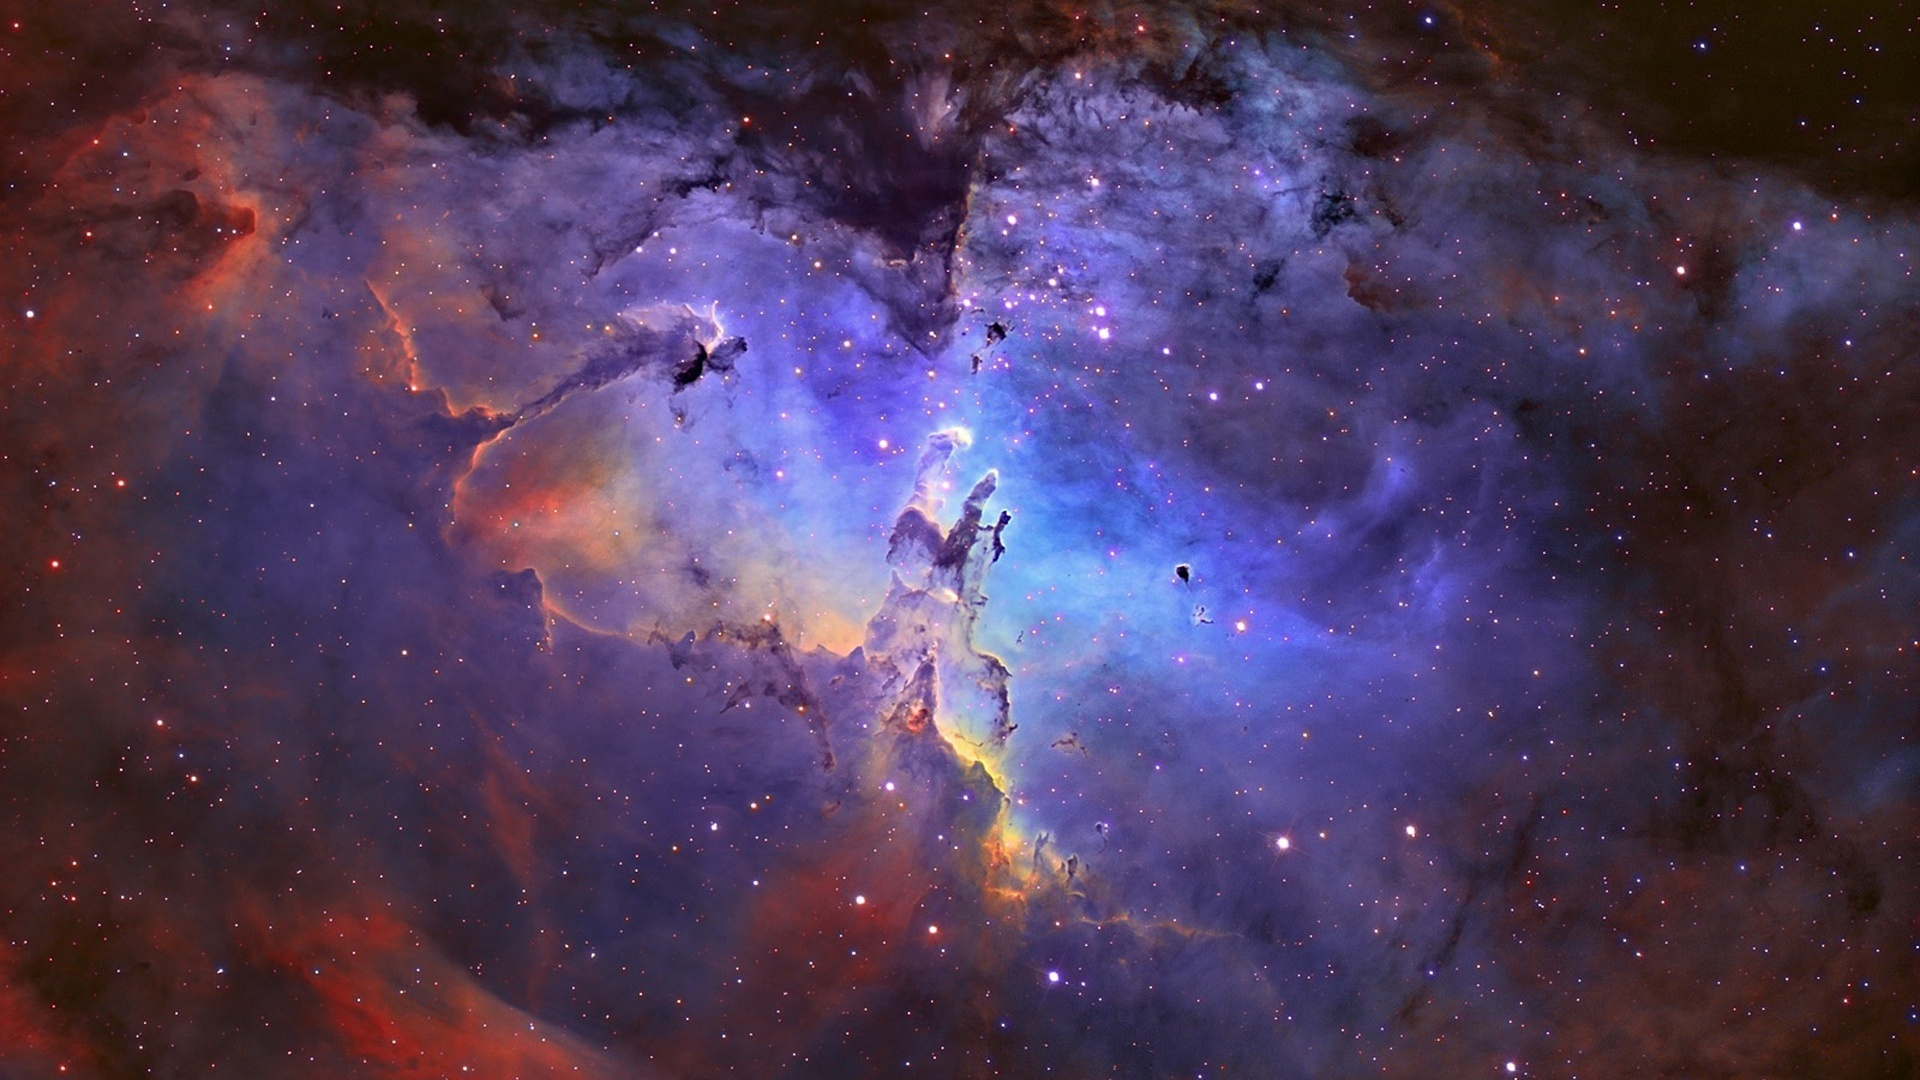 Eagle Nebula In Universe Wallpapers   1920x1080   580908 1920x1080